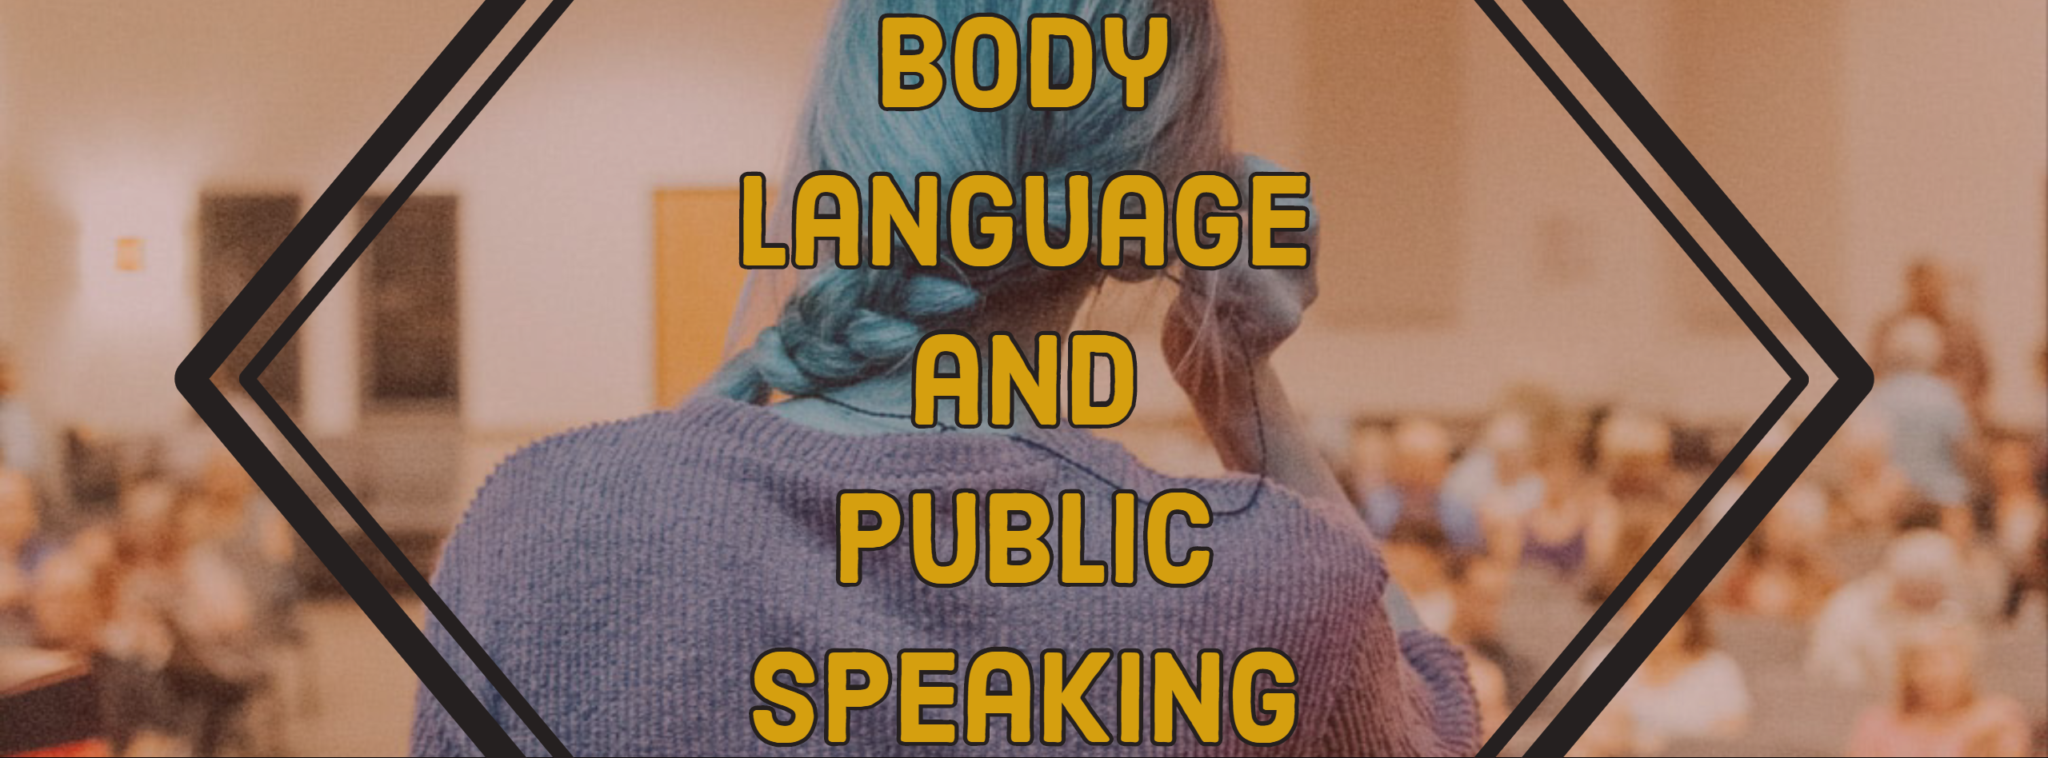 Body Language and Public Speaking